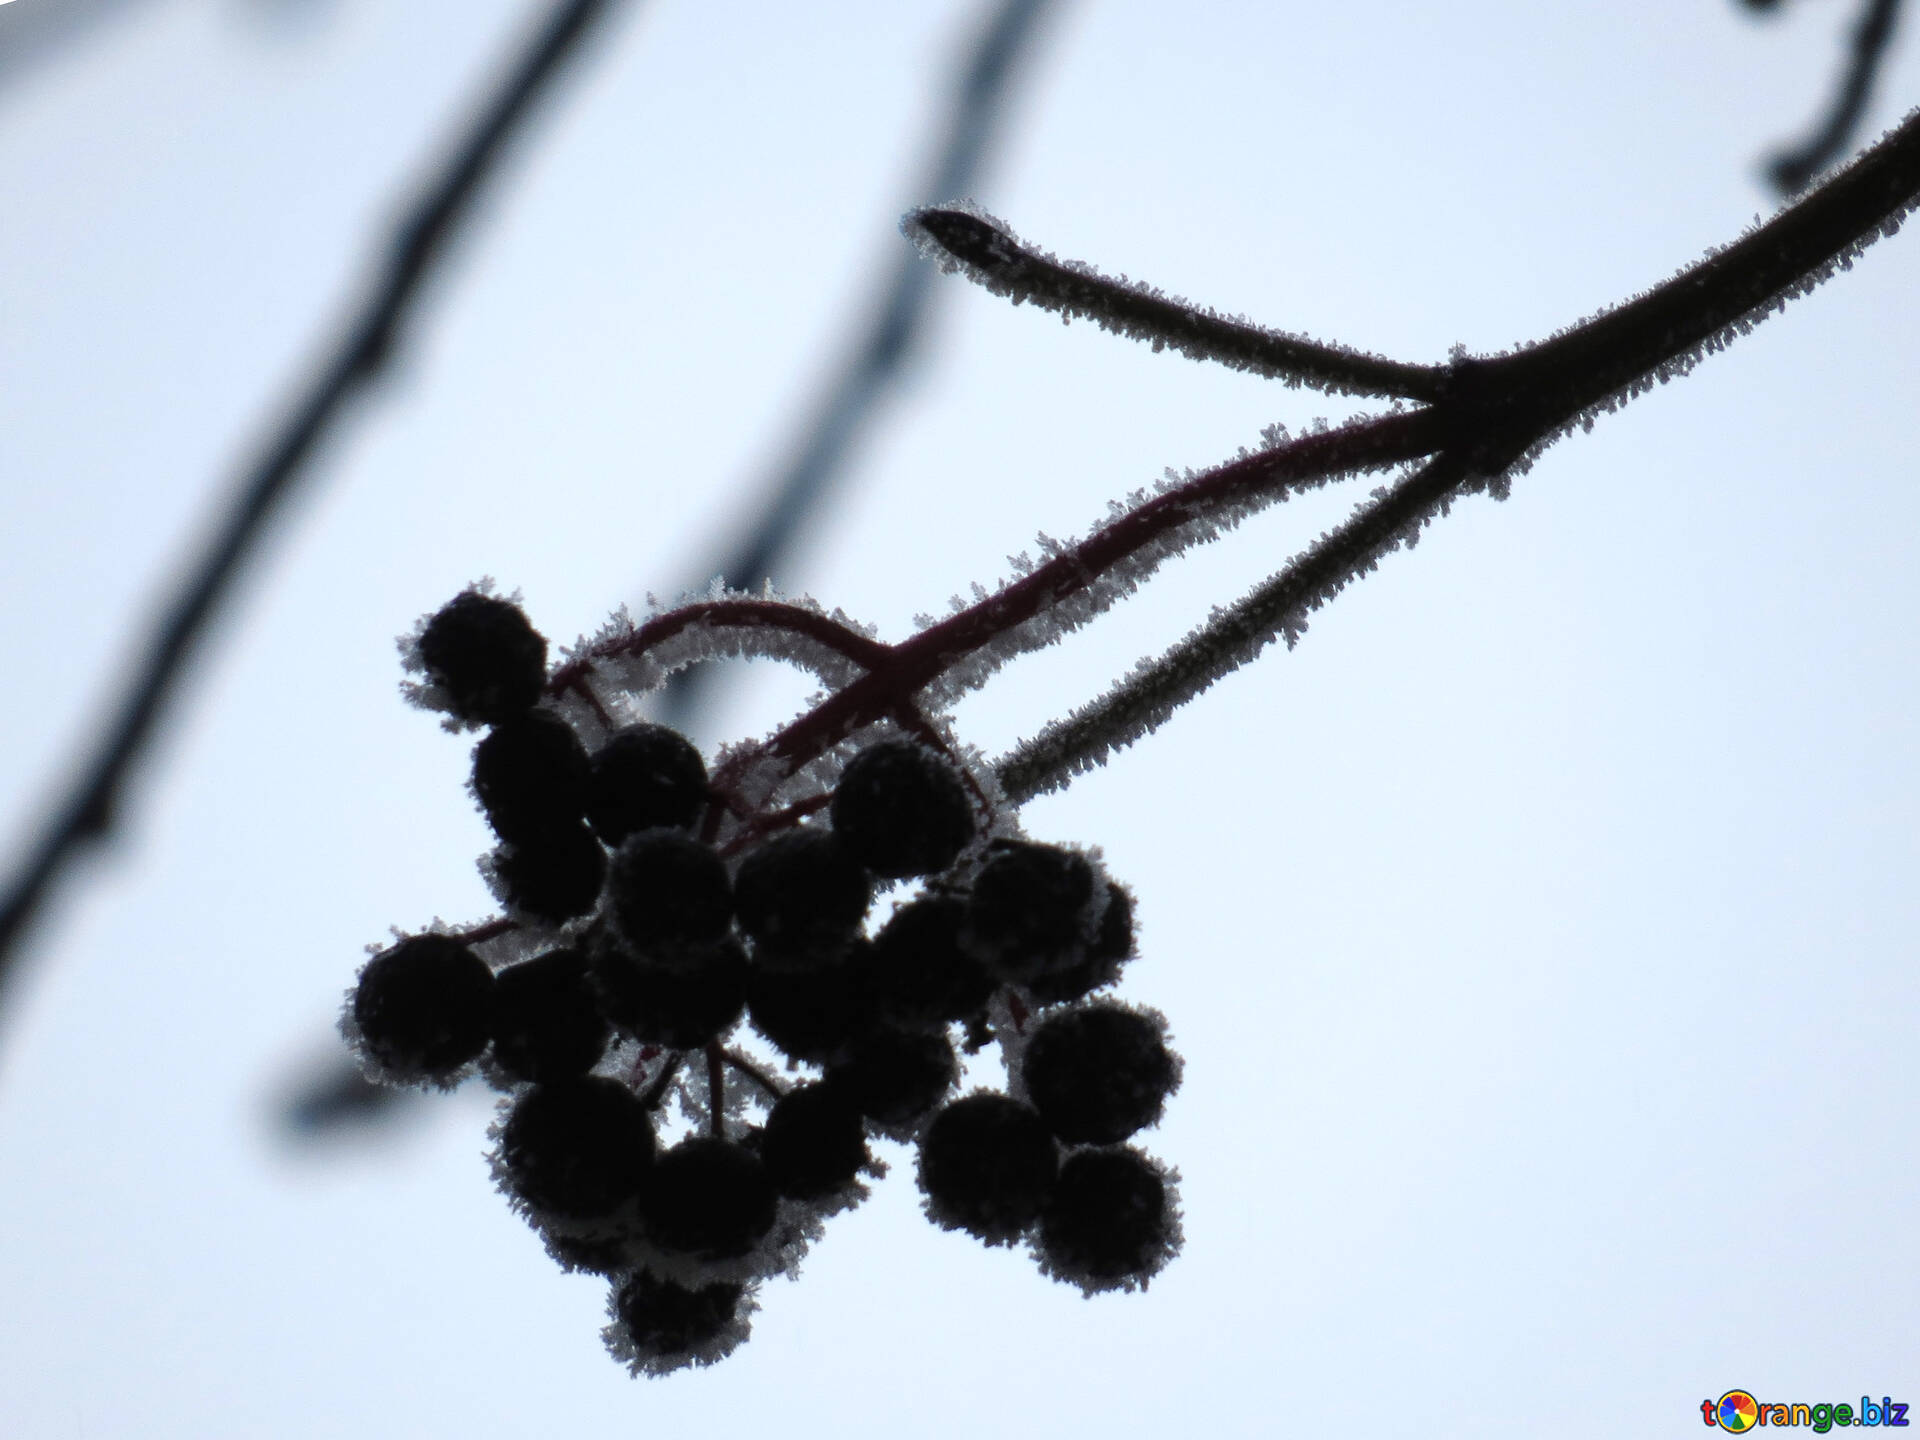 Download free image Frost winter berries in HD wallpaper size 1920px